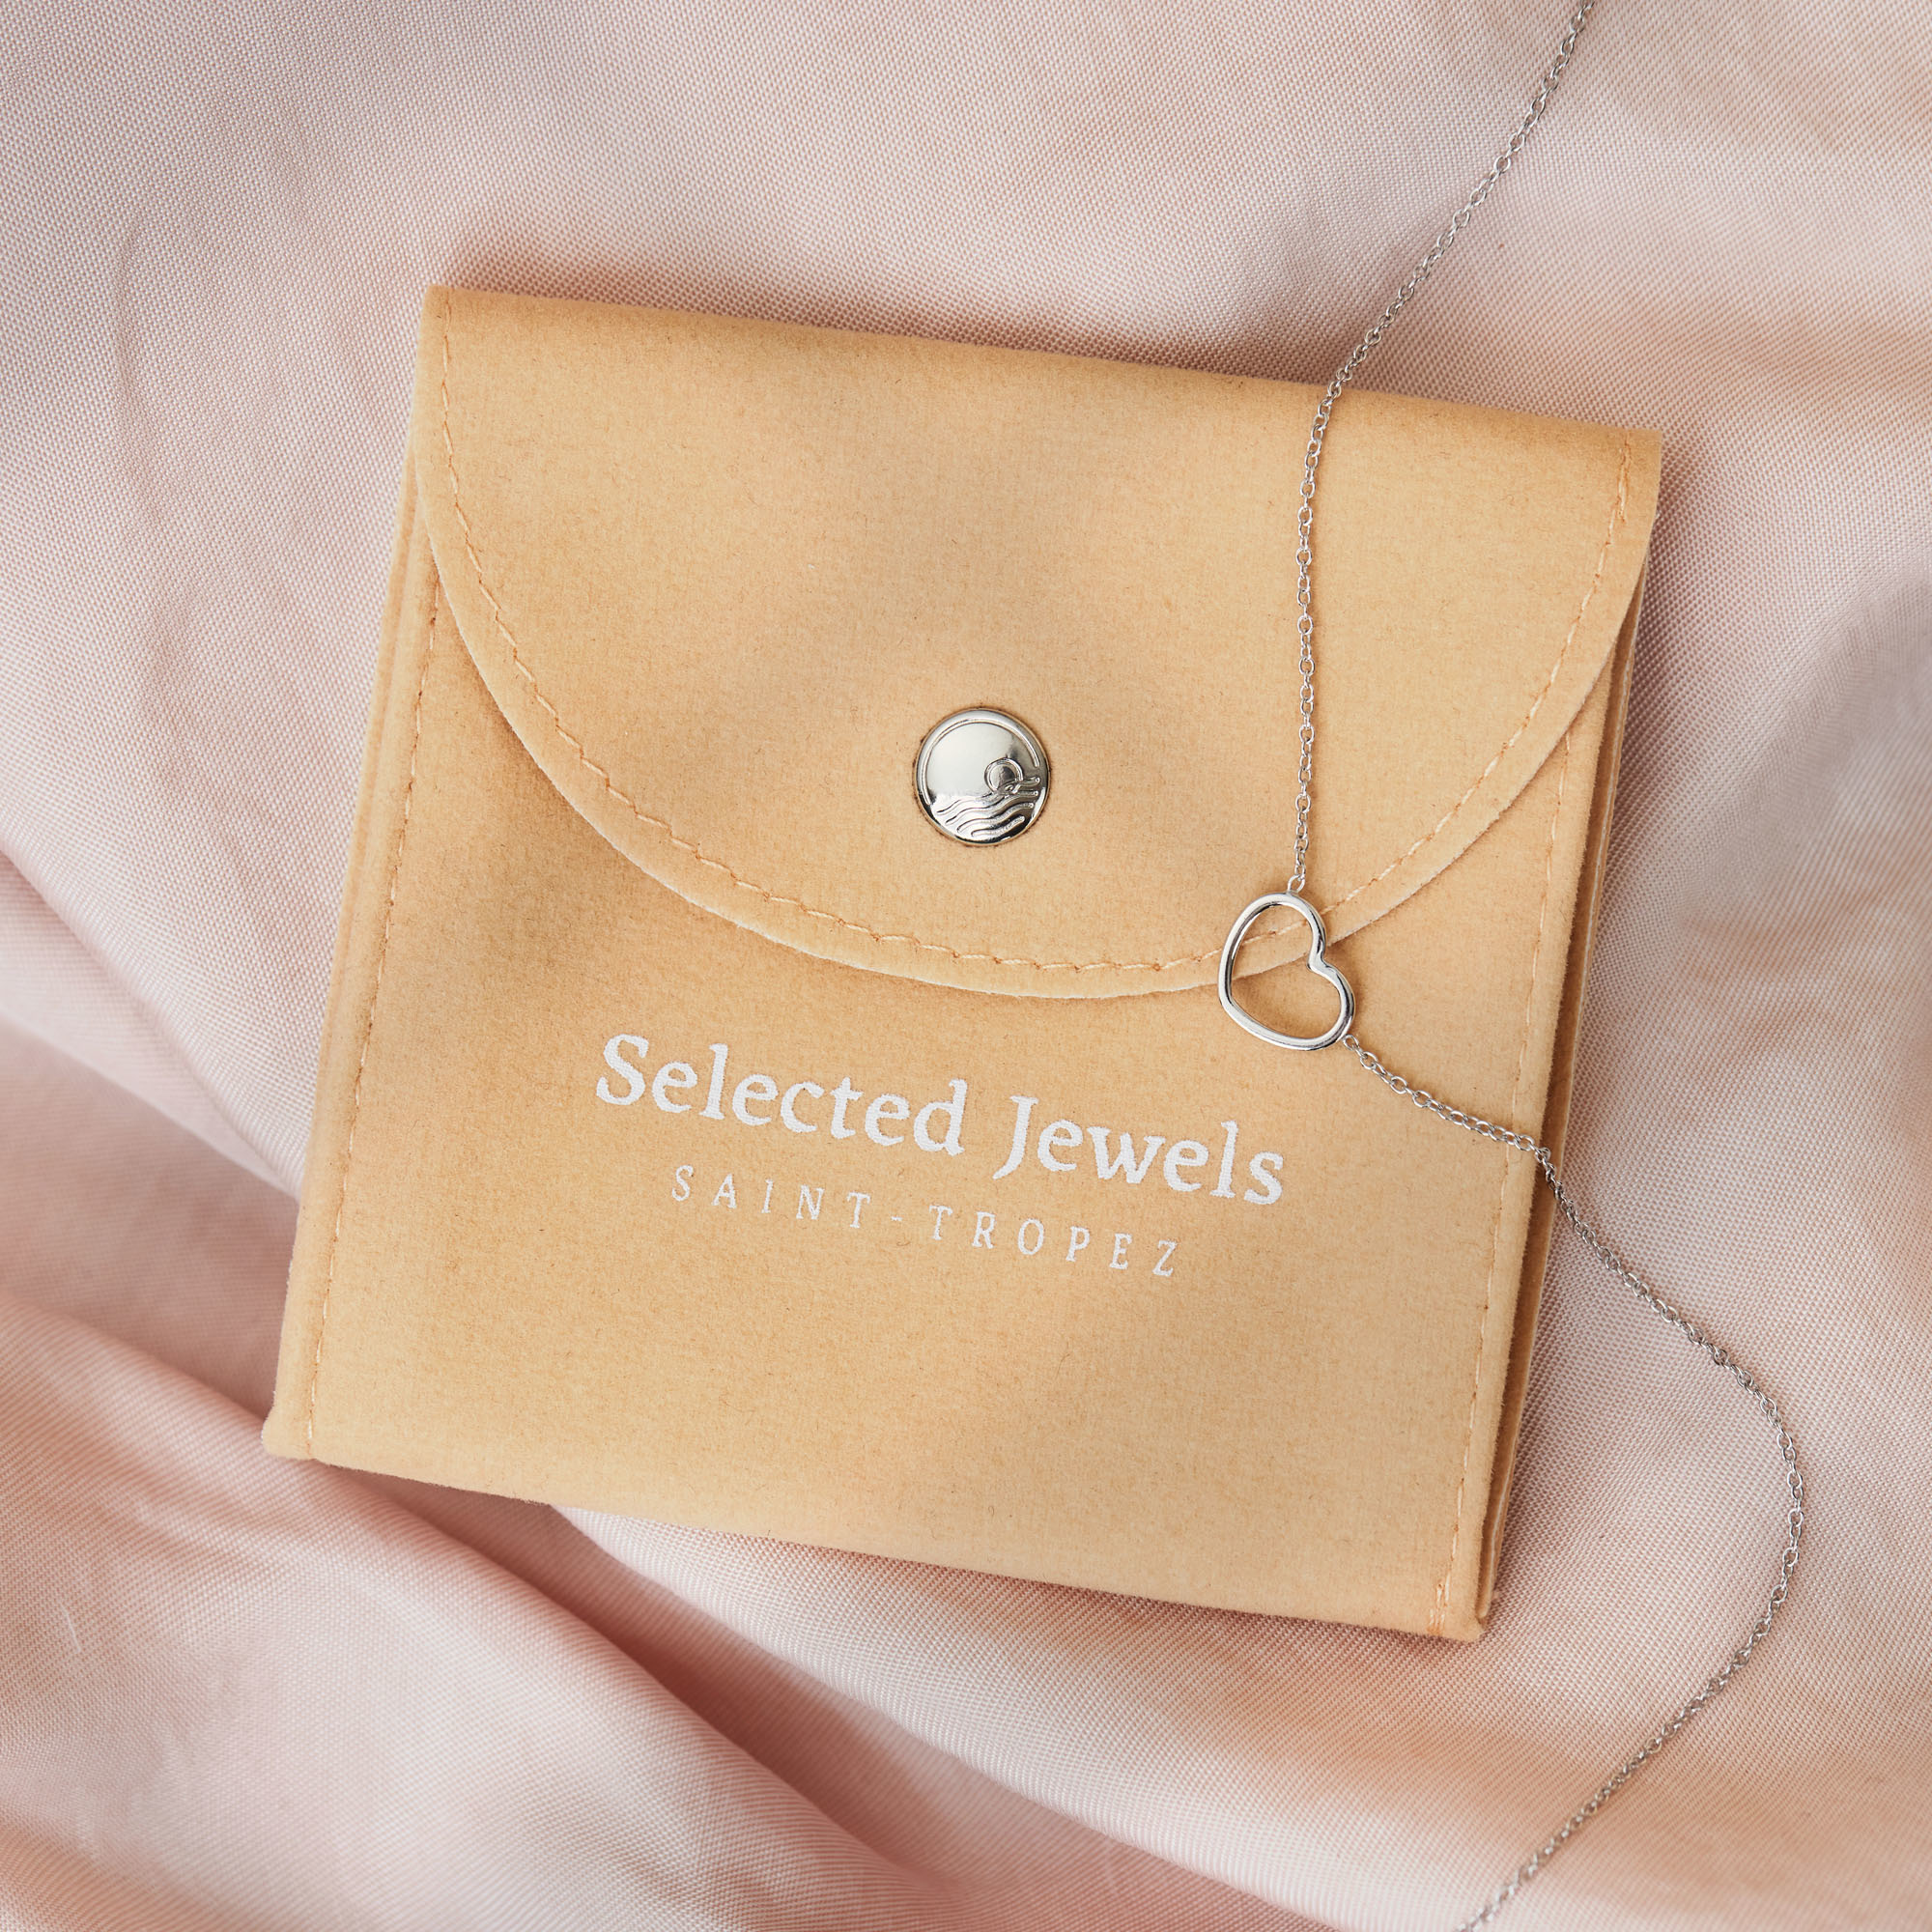 Selected Jewels Aimée 925 sterling zilveren ketting met 2 hartjes en zirkonia